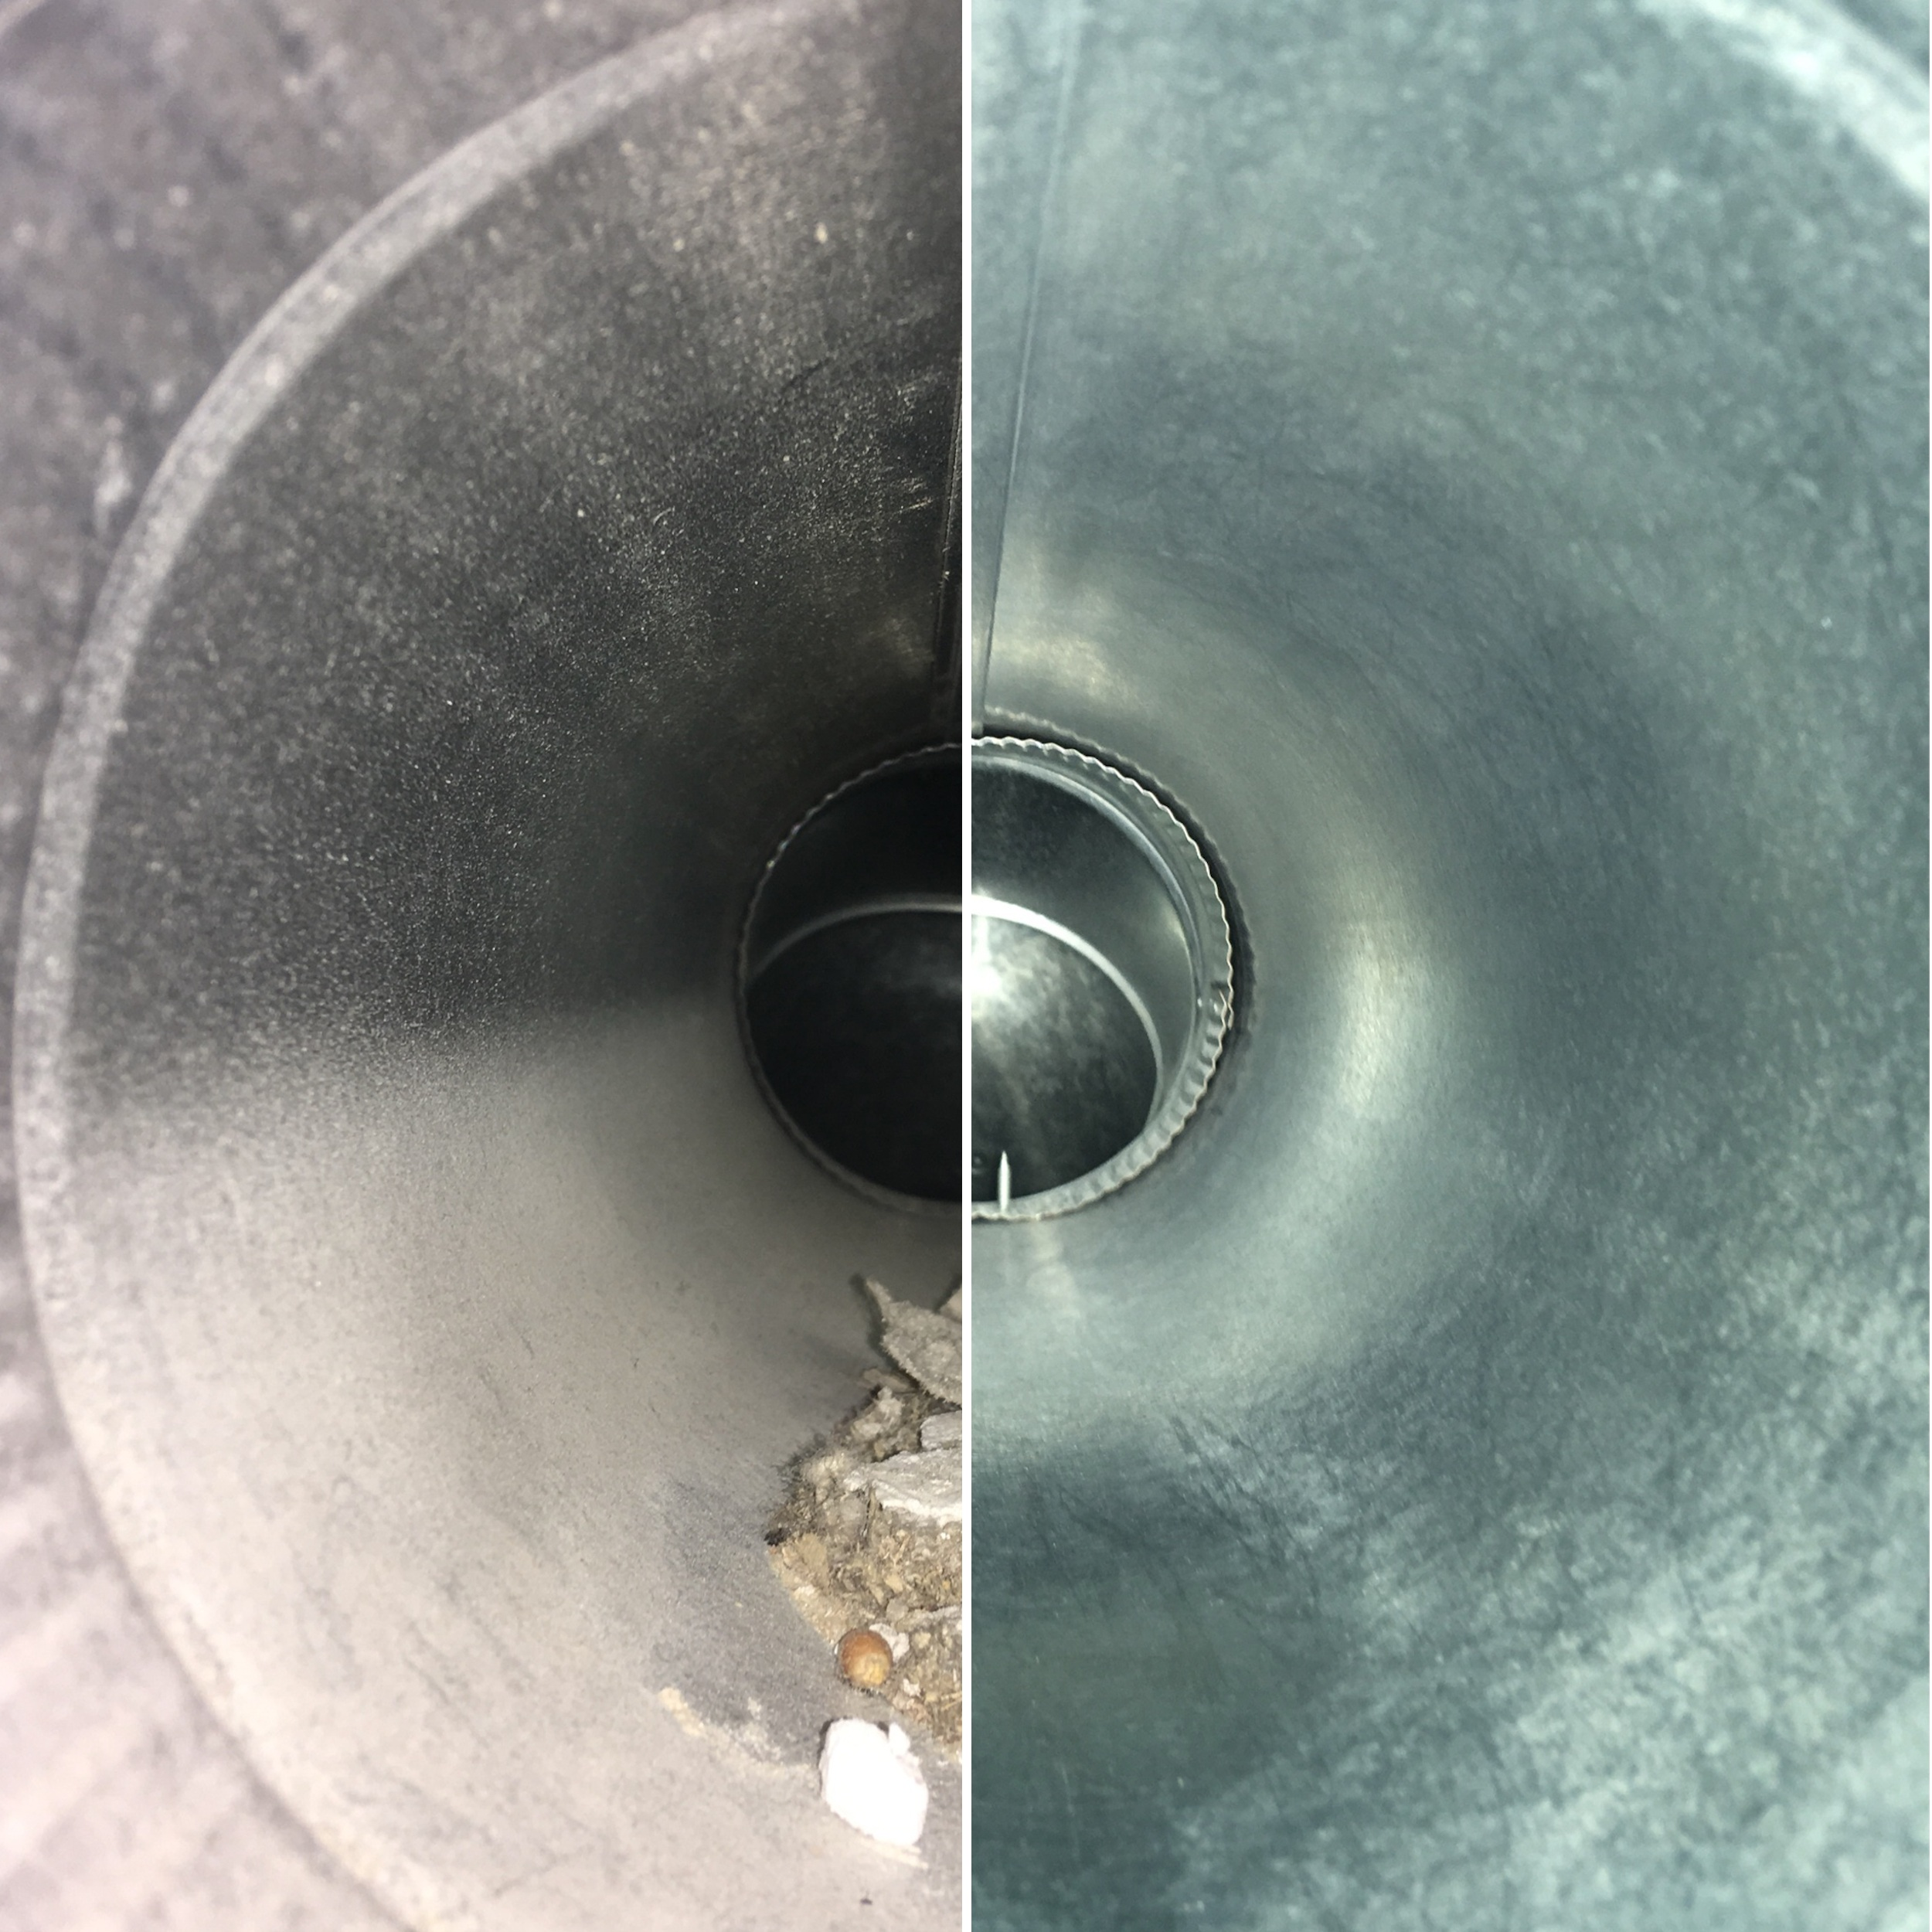 Air duct cleaning - Eliminate pet hair, dander and mold due to water damage. Reduce allergies and other contaminants.